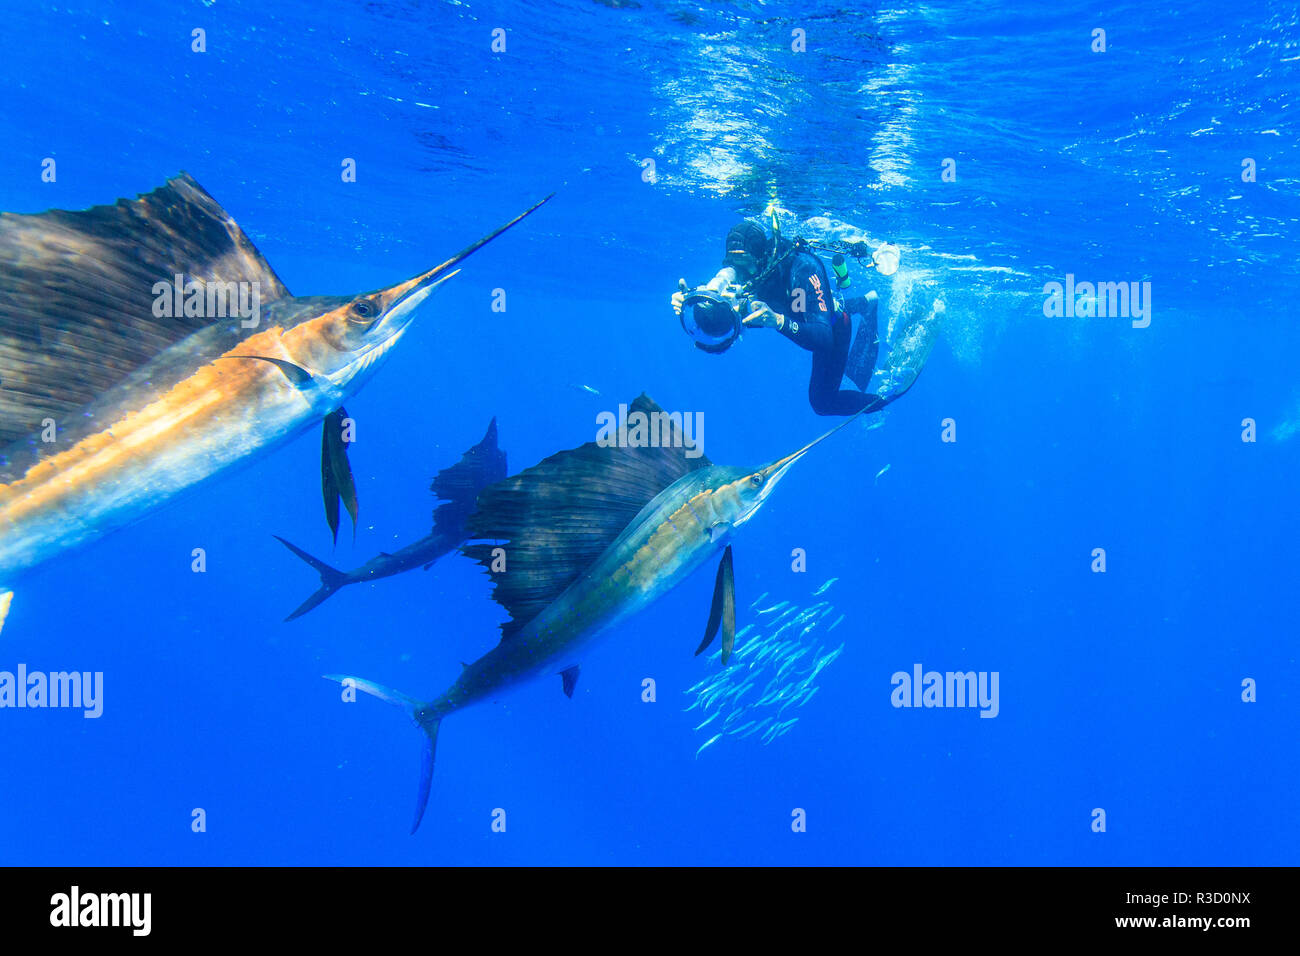 Sailfish (Istiophorus albicans) feeding on Brazilian Sardines about 10 miles offshore from Isla Mujeres, Yucatan Peninsula, Mexico - Stock Image